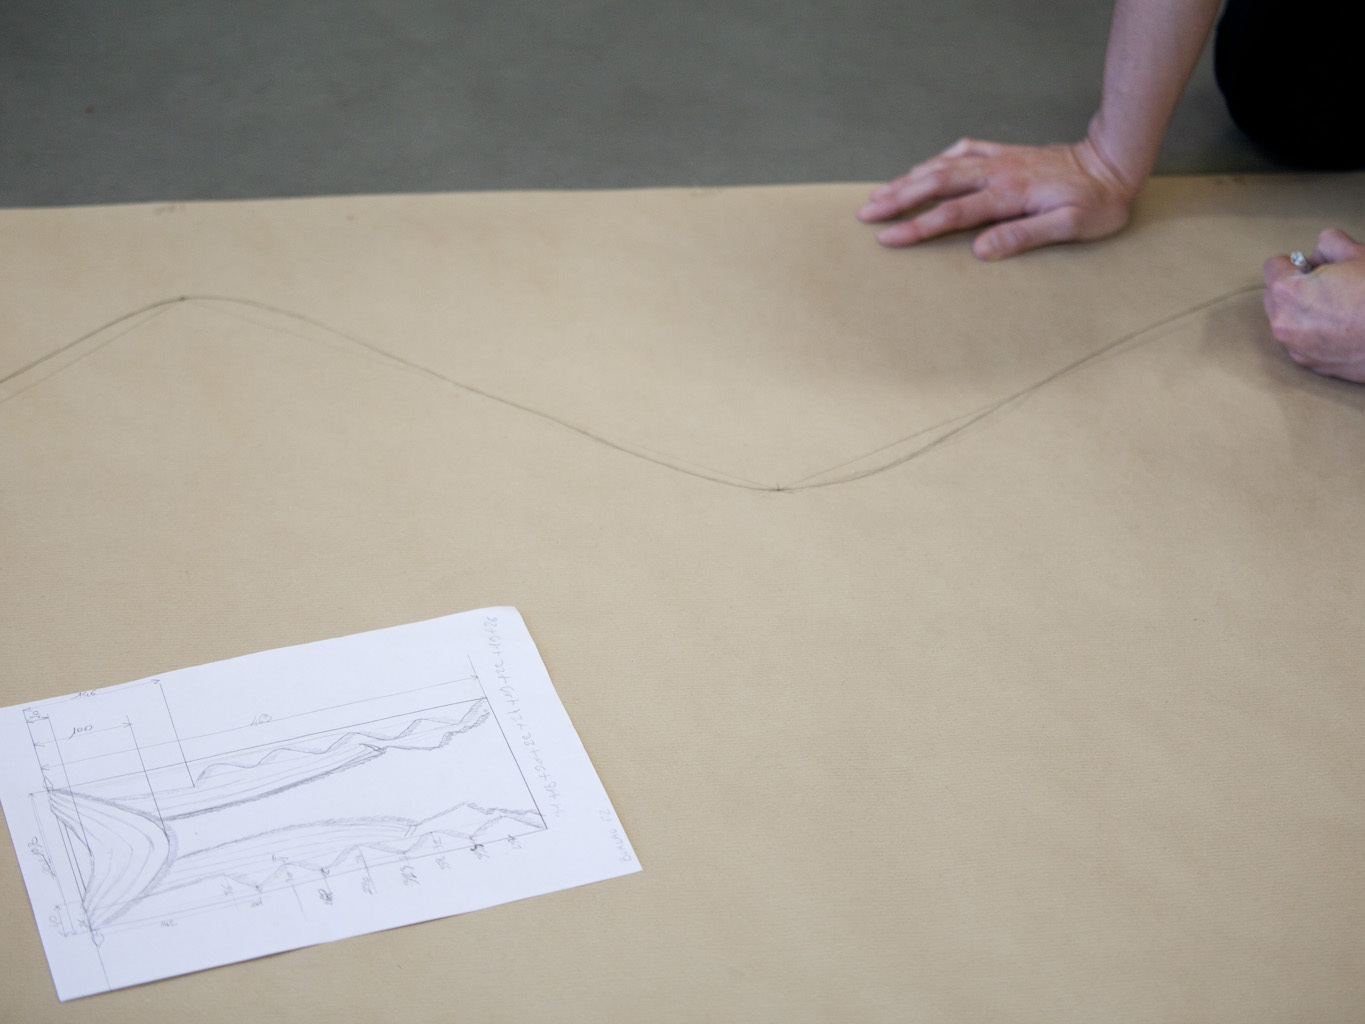 Creating a Decor - In order to cut a fabric or stitch a trim with peace of mind it is first necessary to conceive, design and craft the décor. Once the design is finalized, the seamstresses create a full-sized mock-up of the pleats in the workshops, for a final and meticulous check prior to packing and dispatch